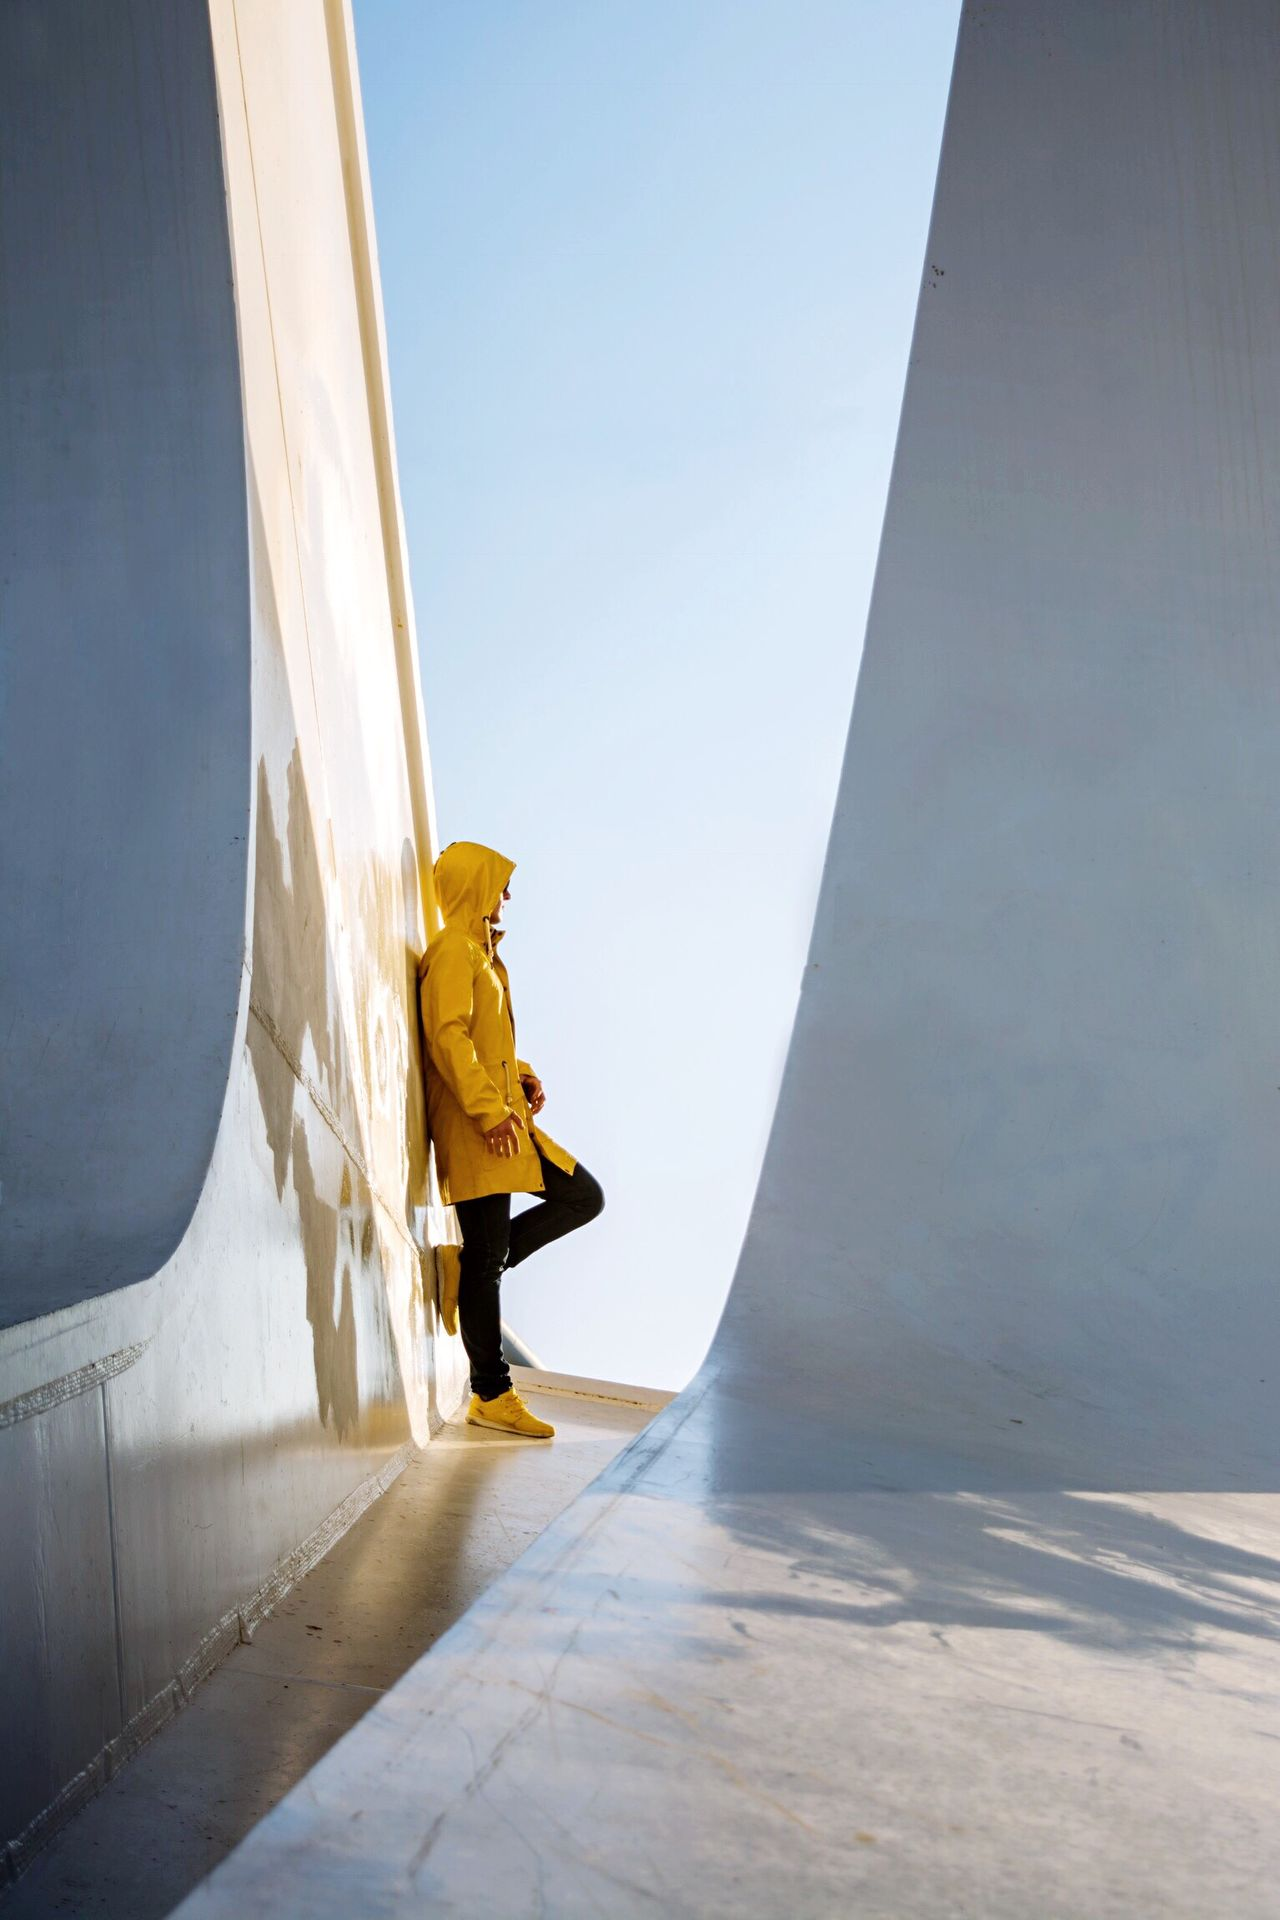 Beautiful stock photos of griechenland, full length, one person, sunlight, adults only